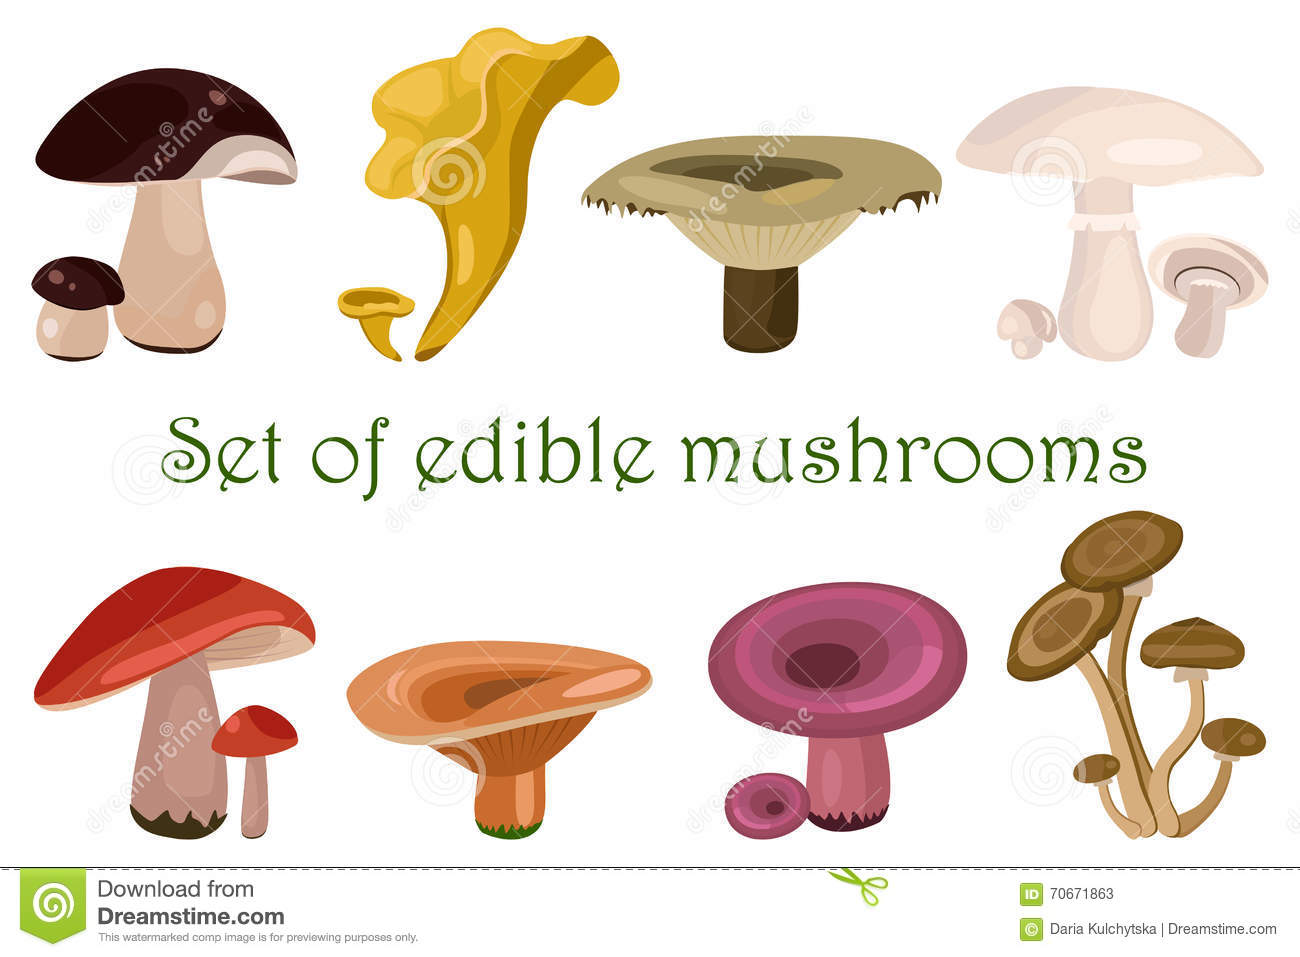 Every Type Of Mushroom You Need To Know About